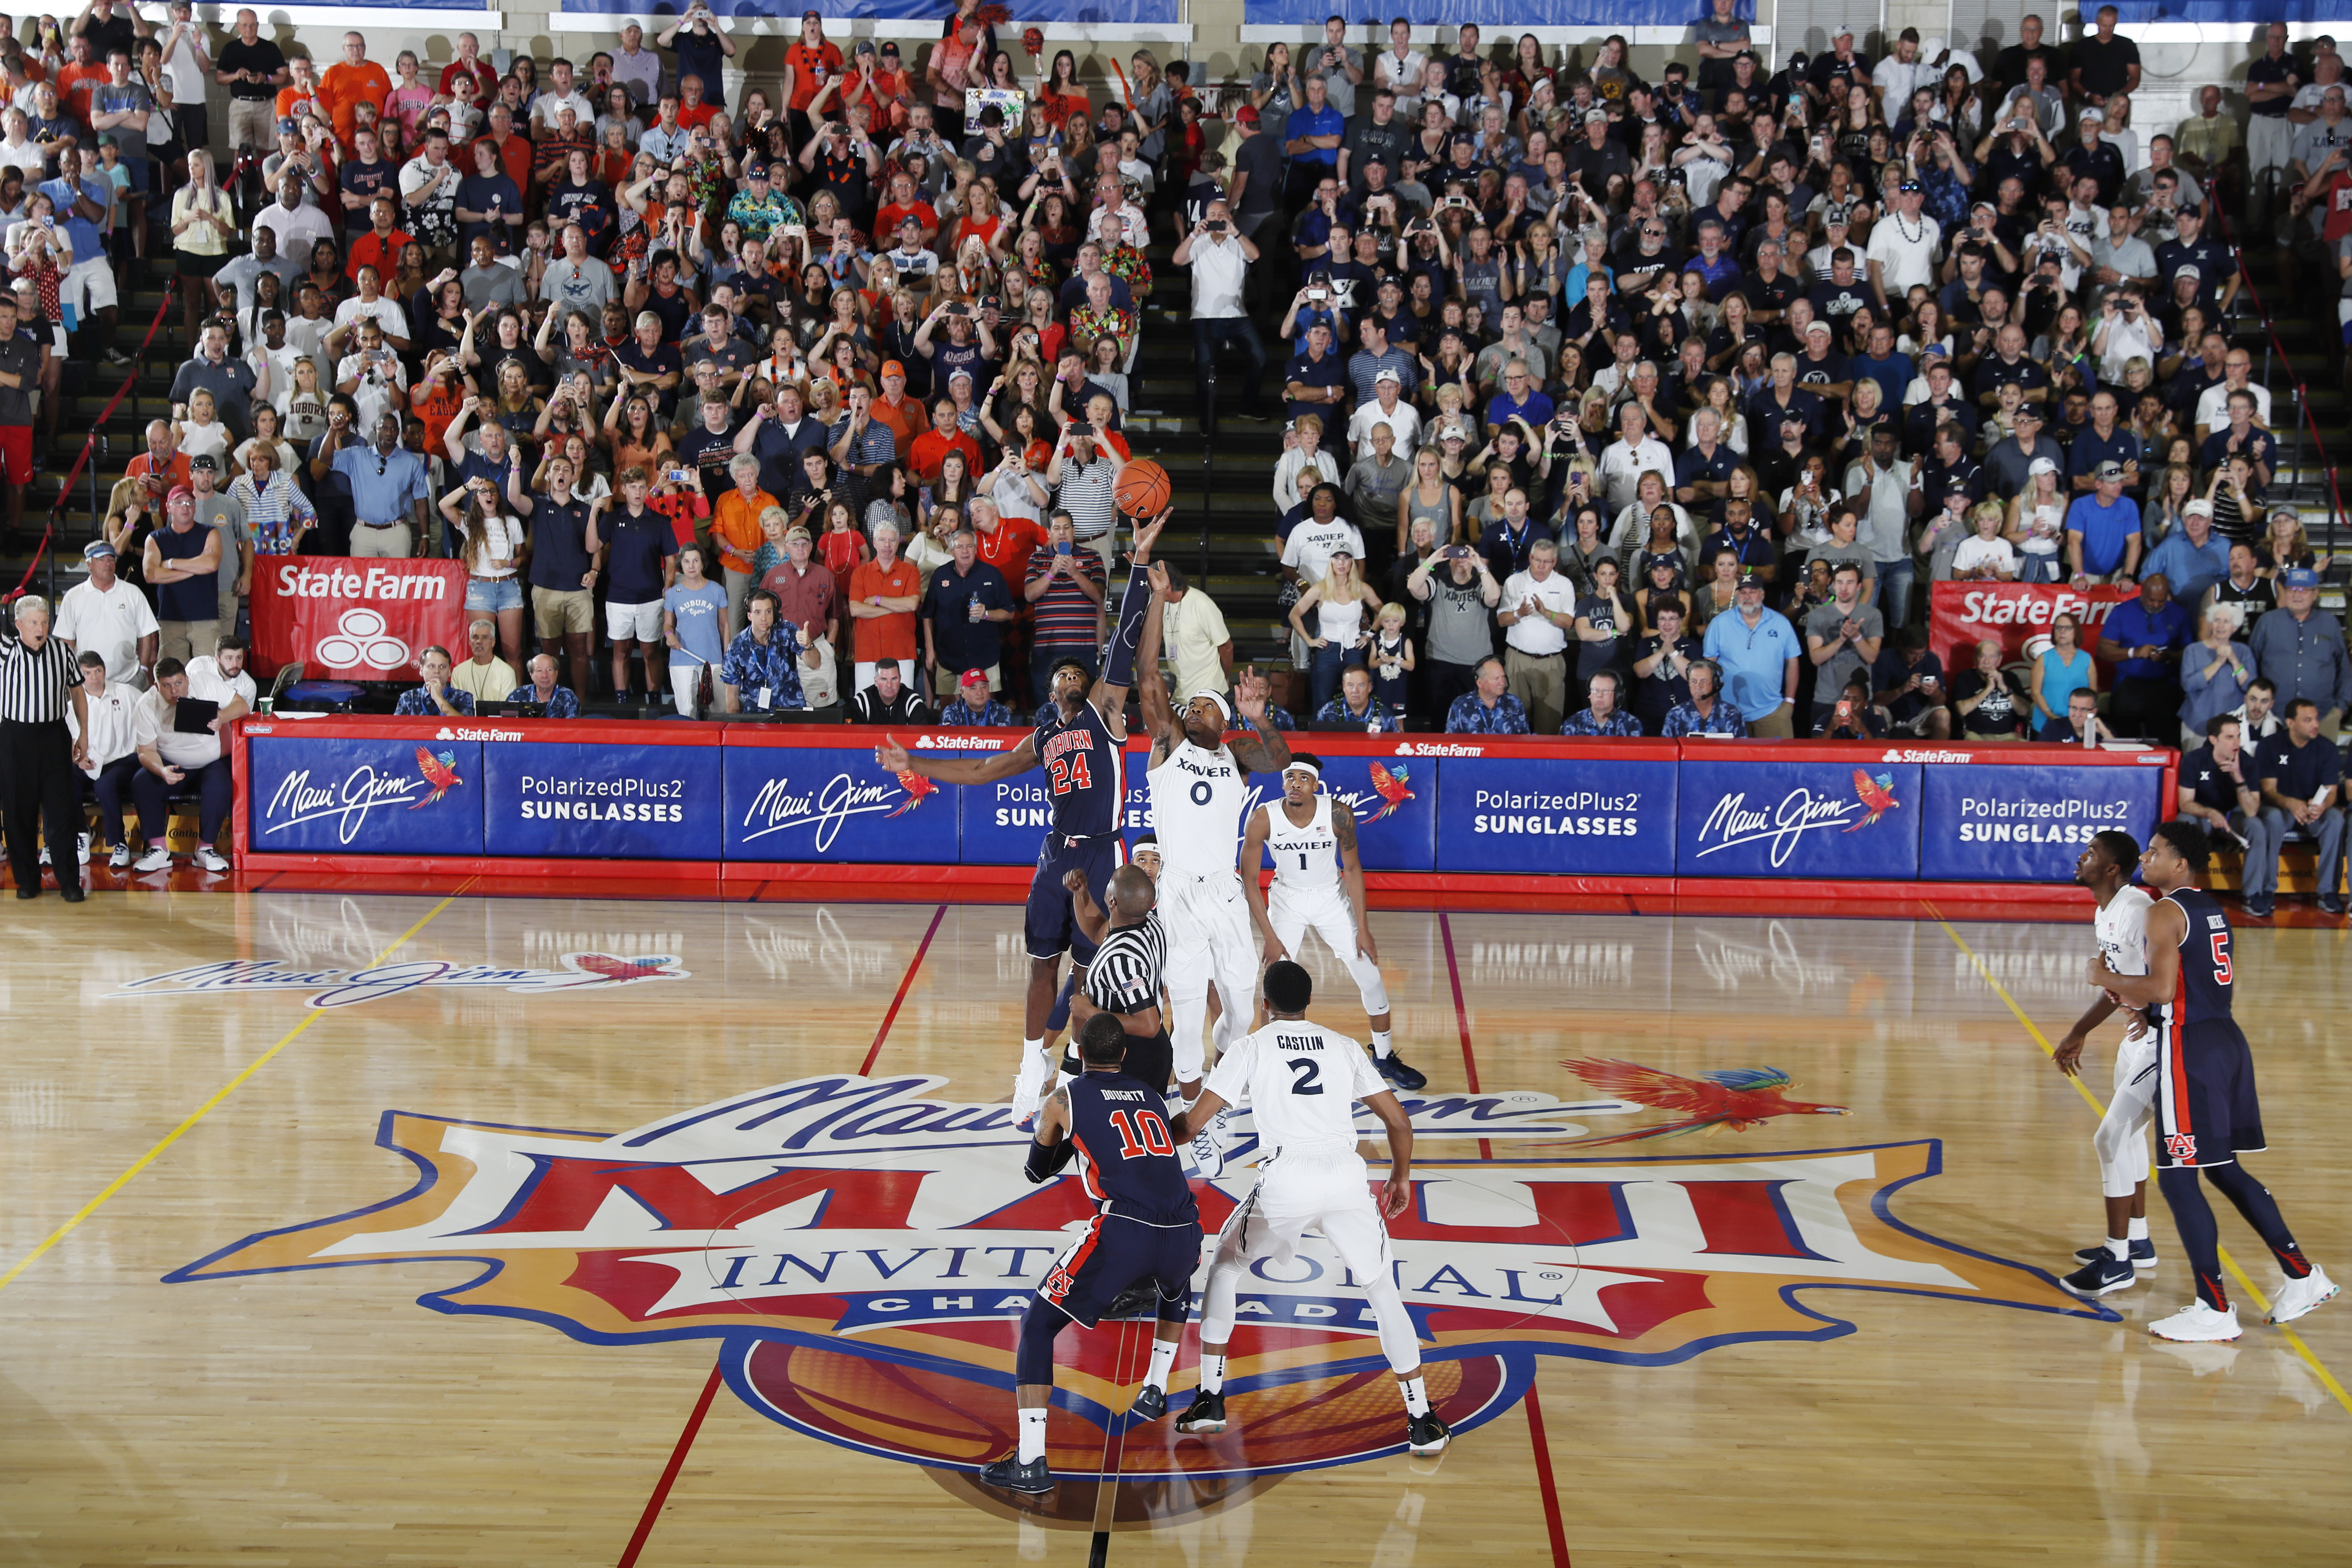 Preseason Tournaments are Key for Fan Engagement in College Basketball